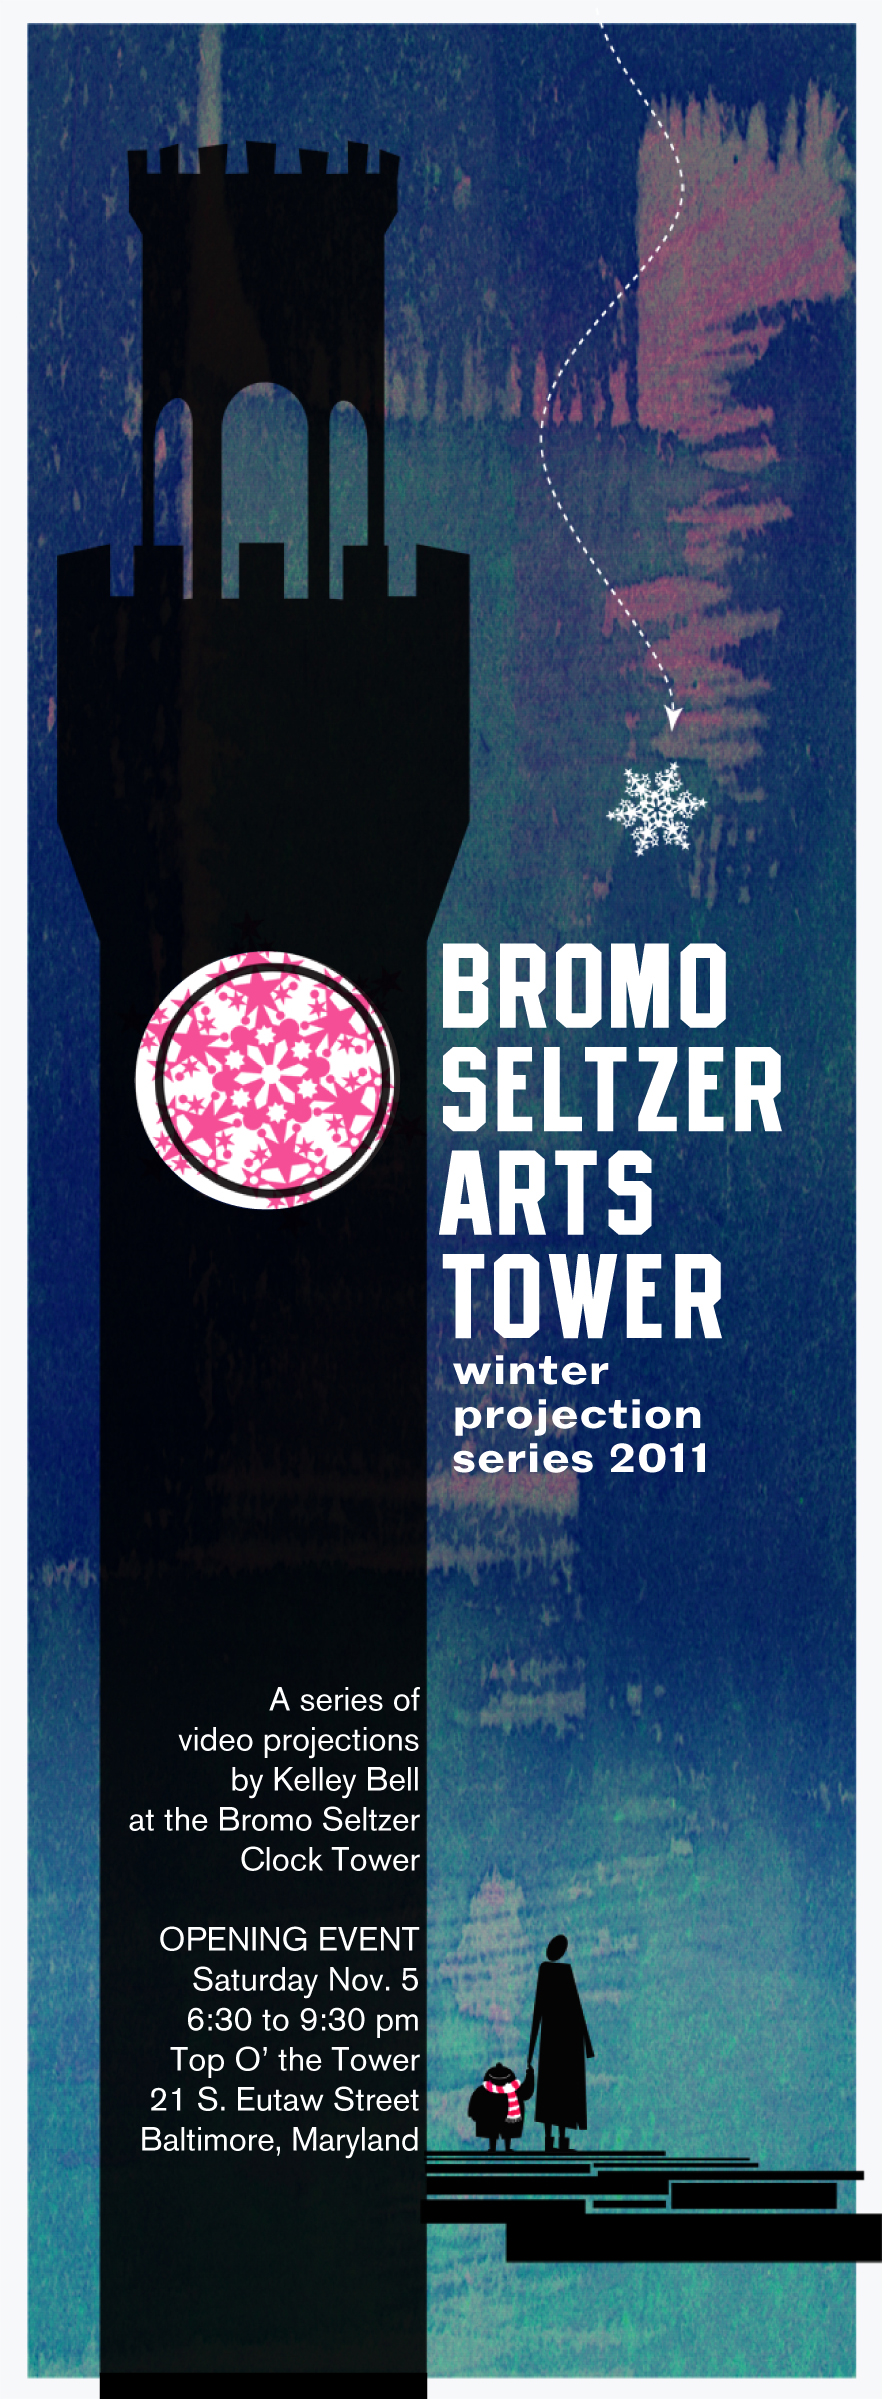 Promotional Poster for Bromoseltzer projection series, winter 2012.